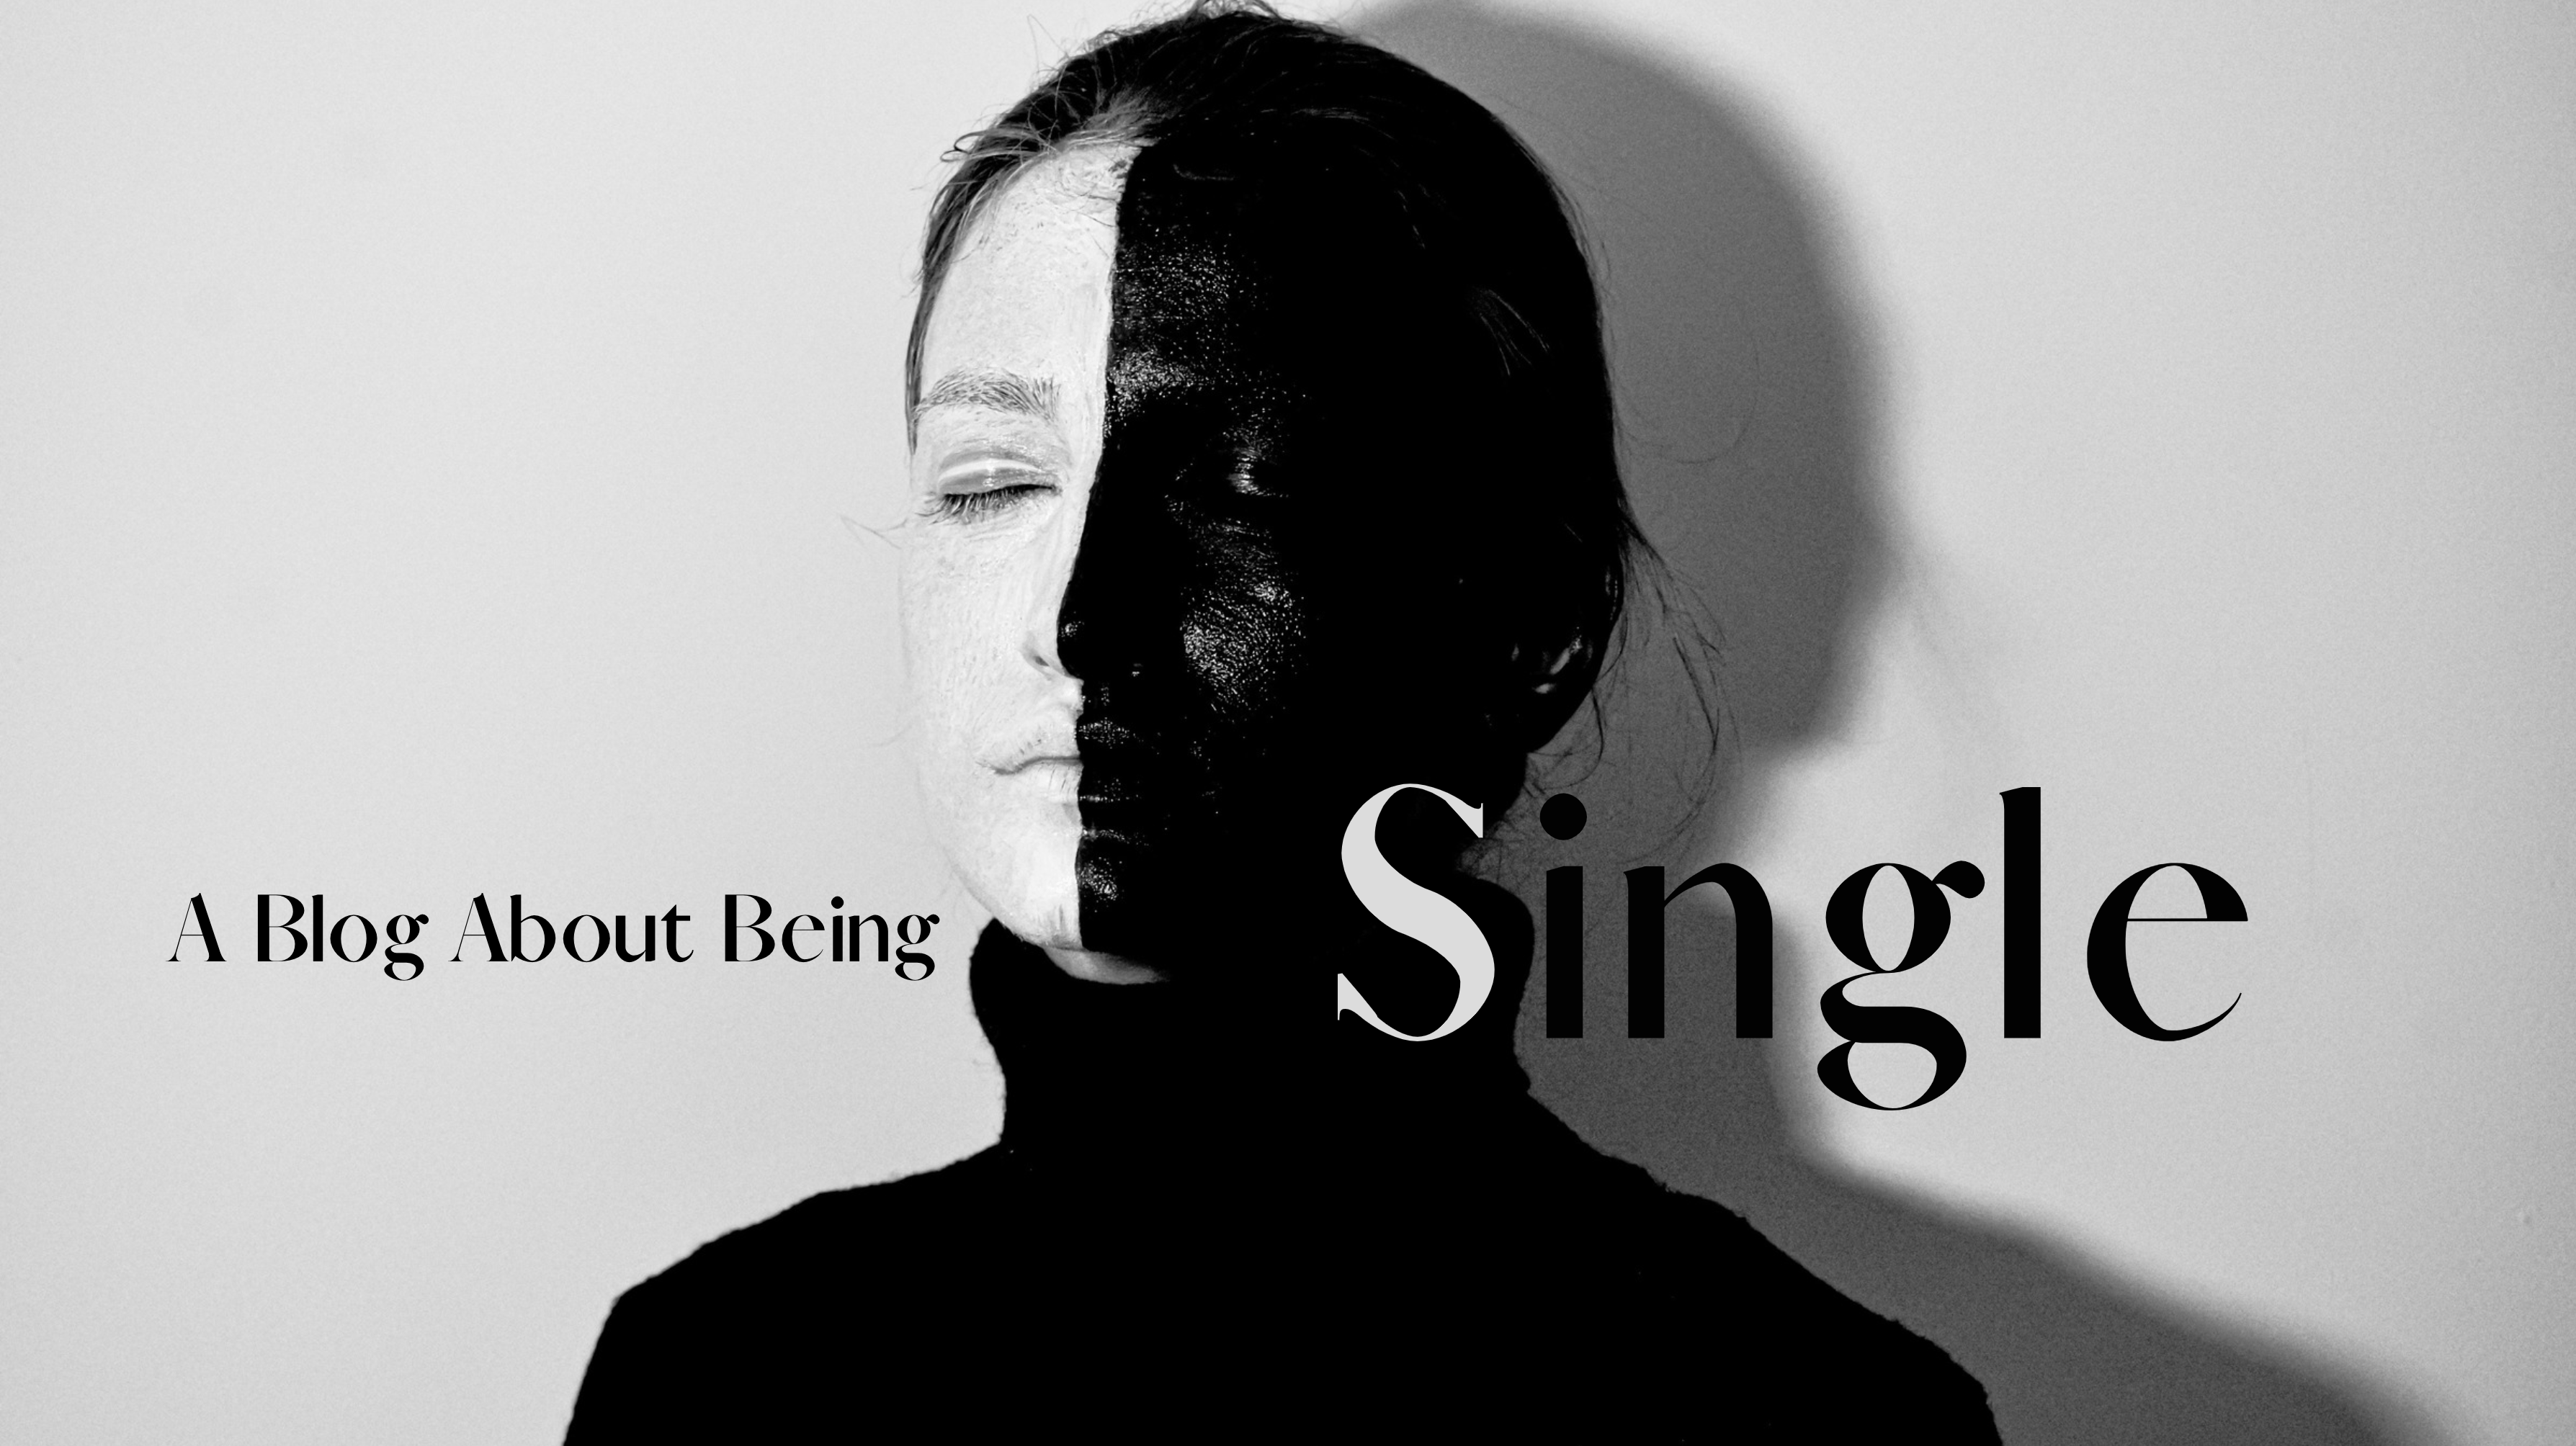 A Blog About Being Single